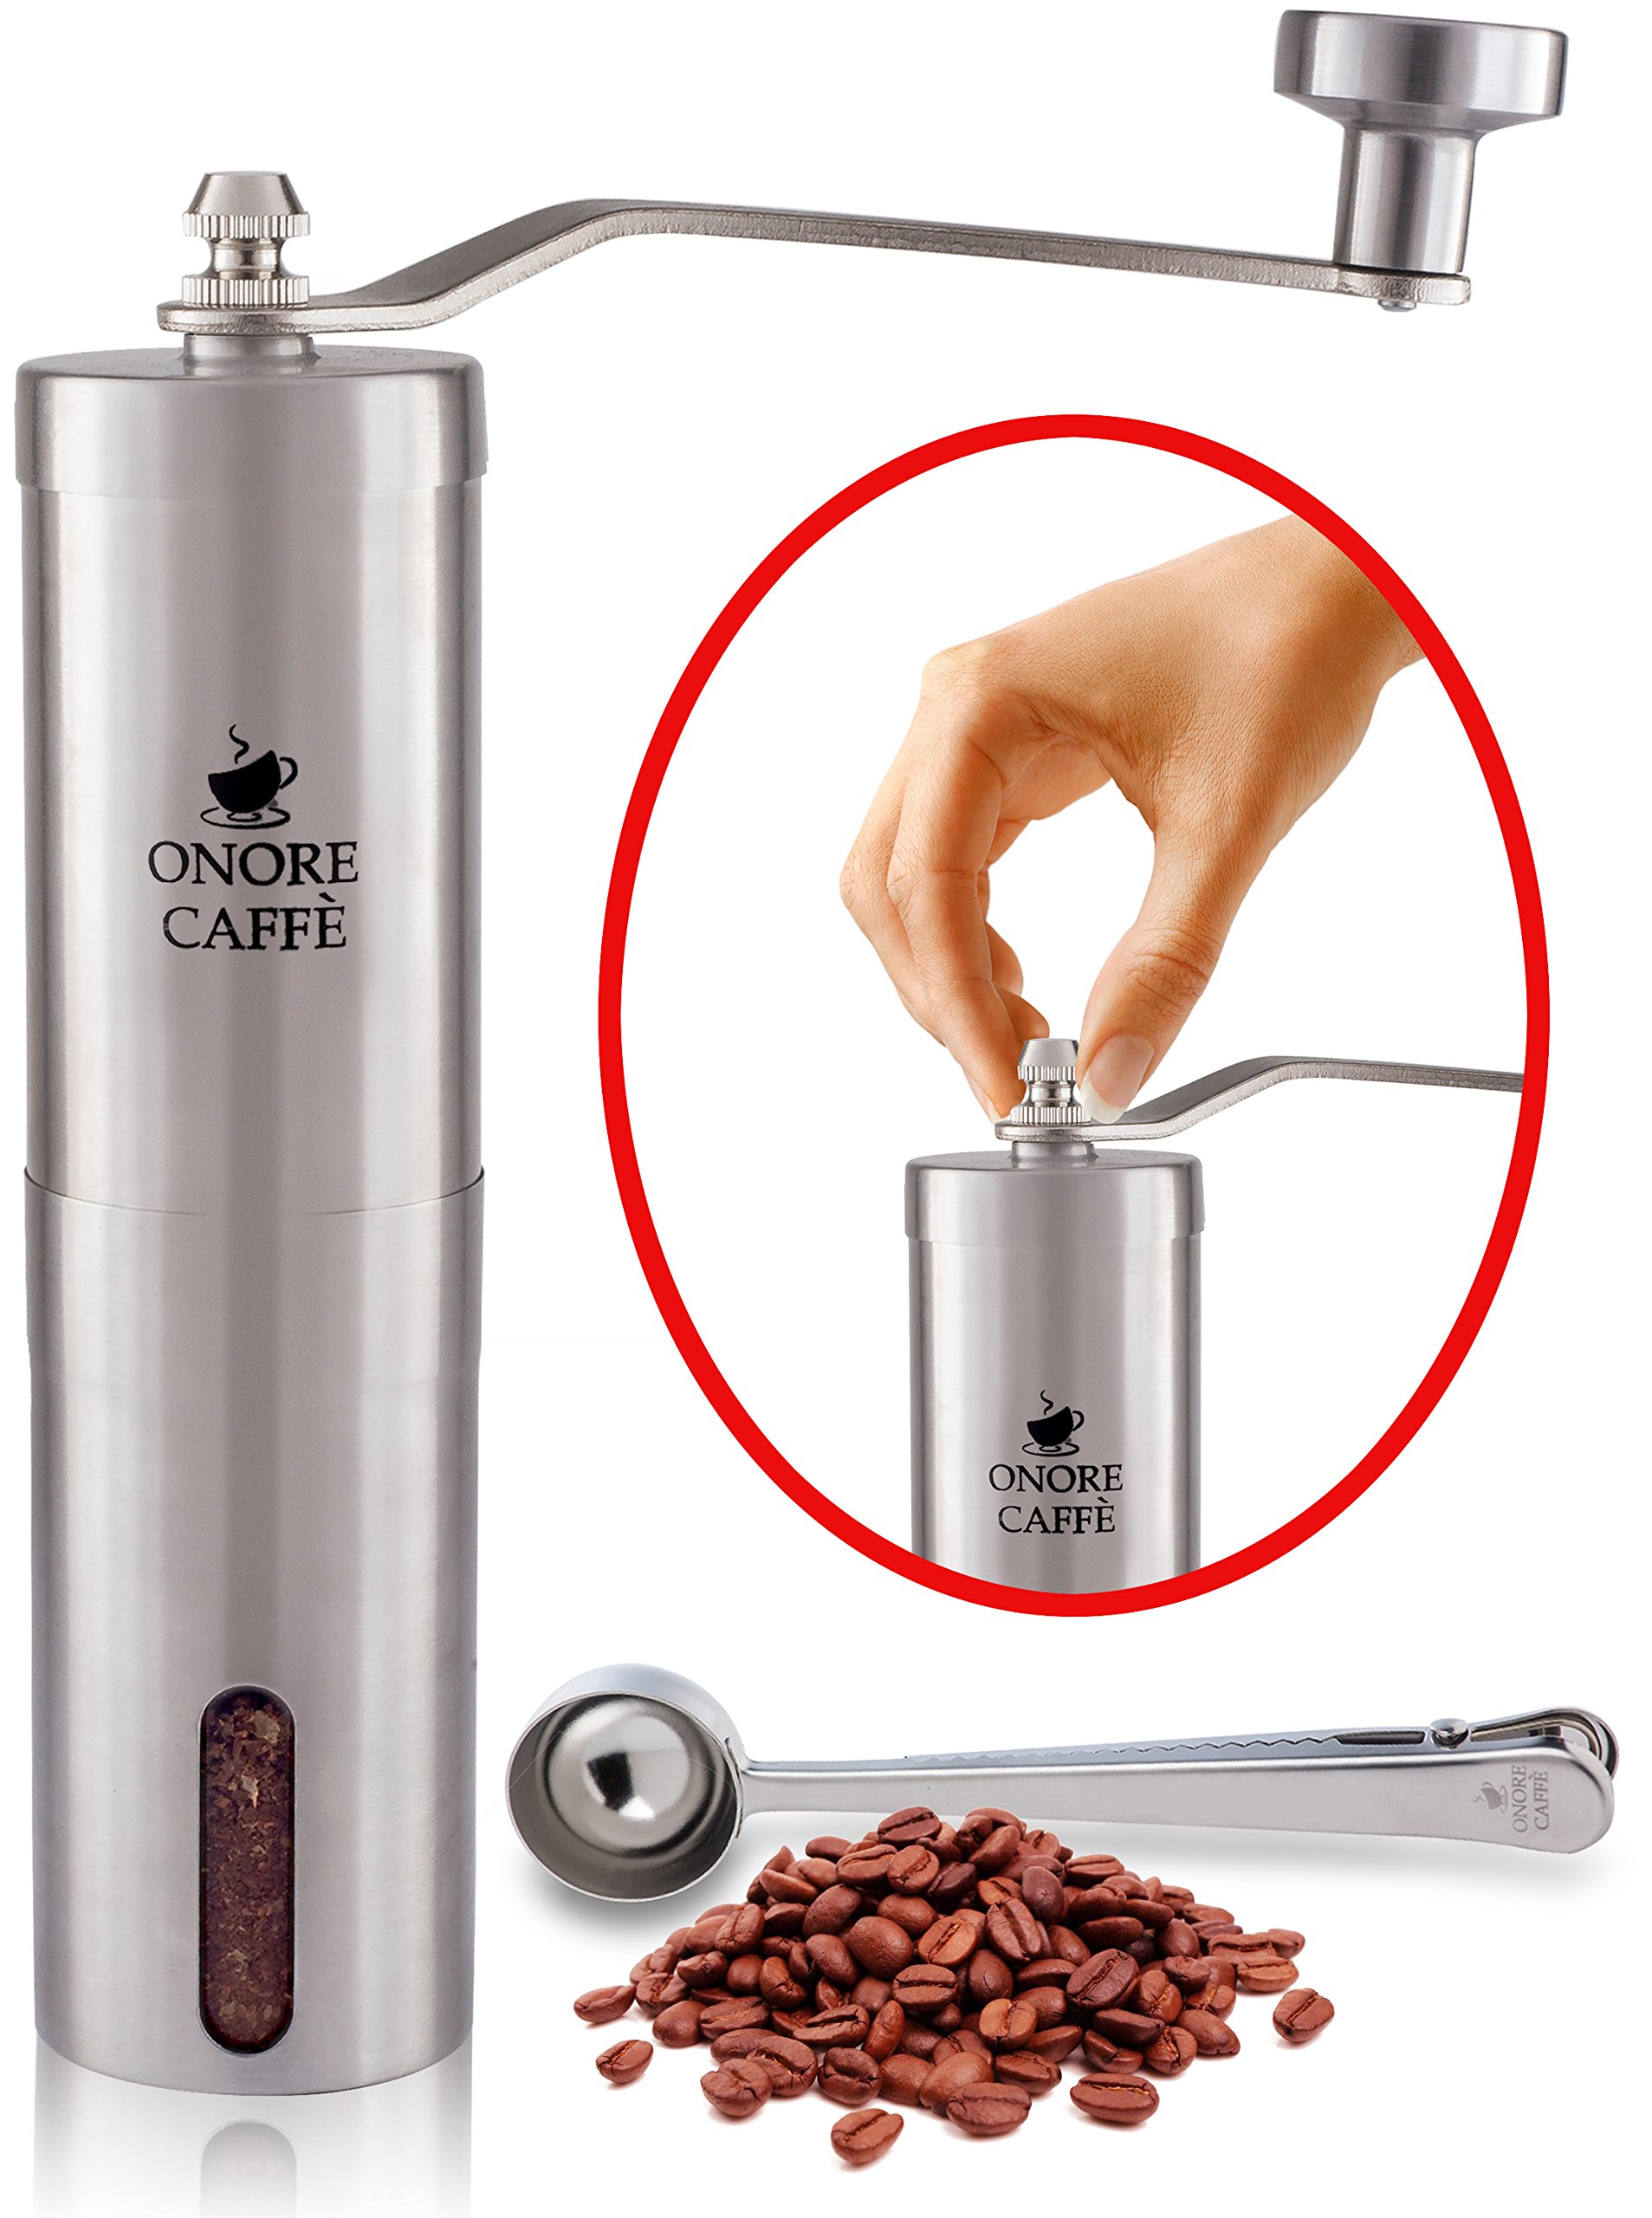 Heavy Duty - Premium Quality Stainless Steel Manual Coffee Grinder - Portable Conical Burr Mill for Precision Brewing + Unique Screw Patent + Scoop + Brush + E-book :: French Press- Espresso - Turkish by ONORE CAFFE